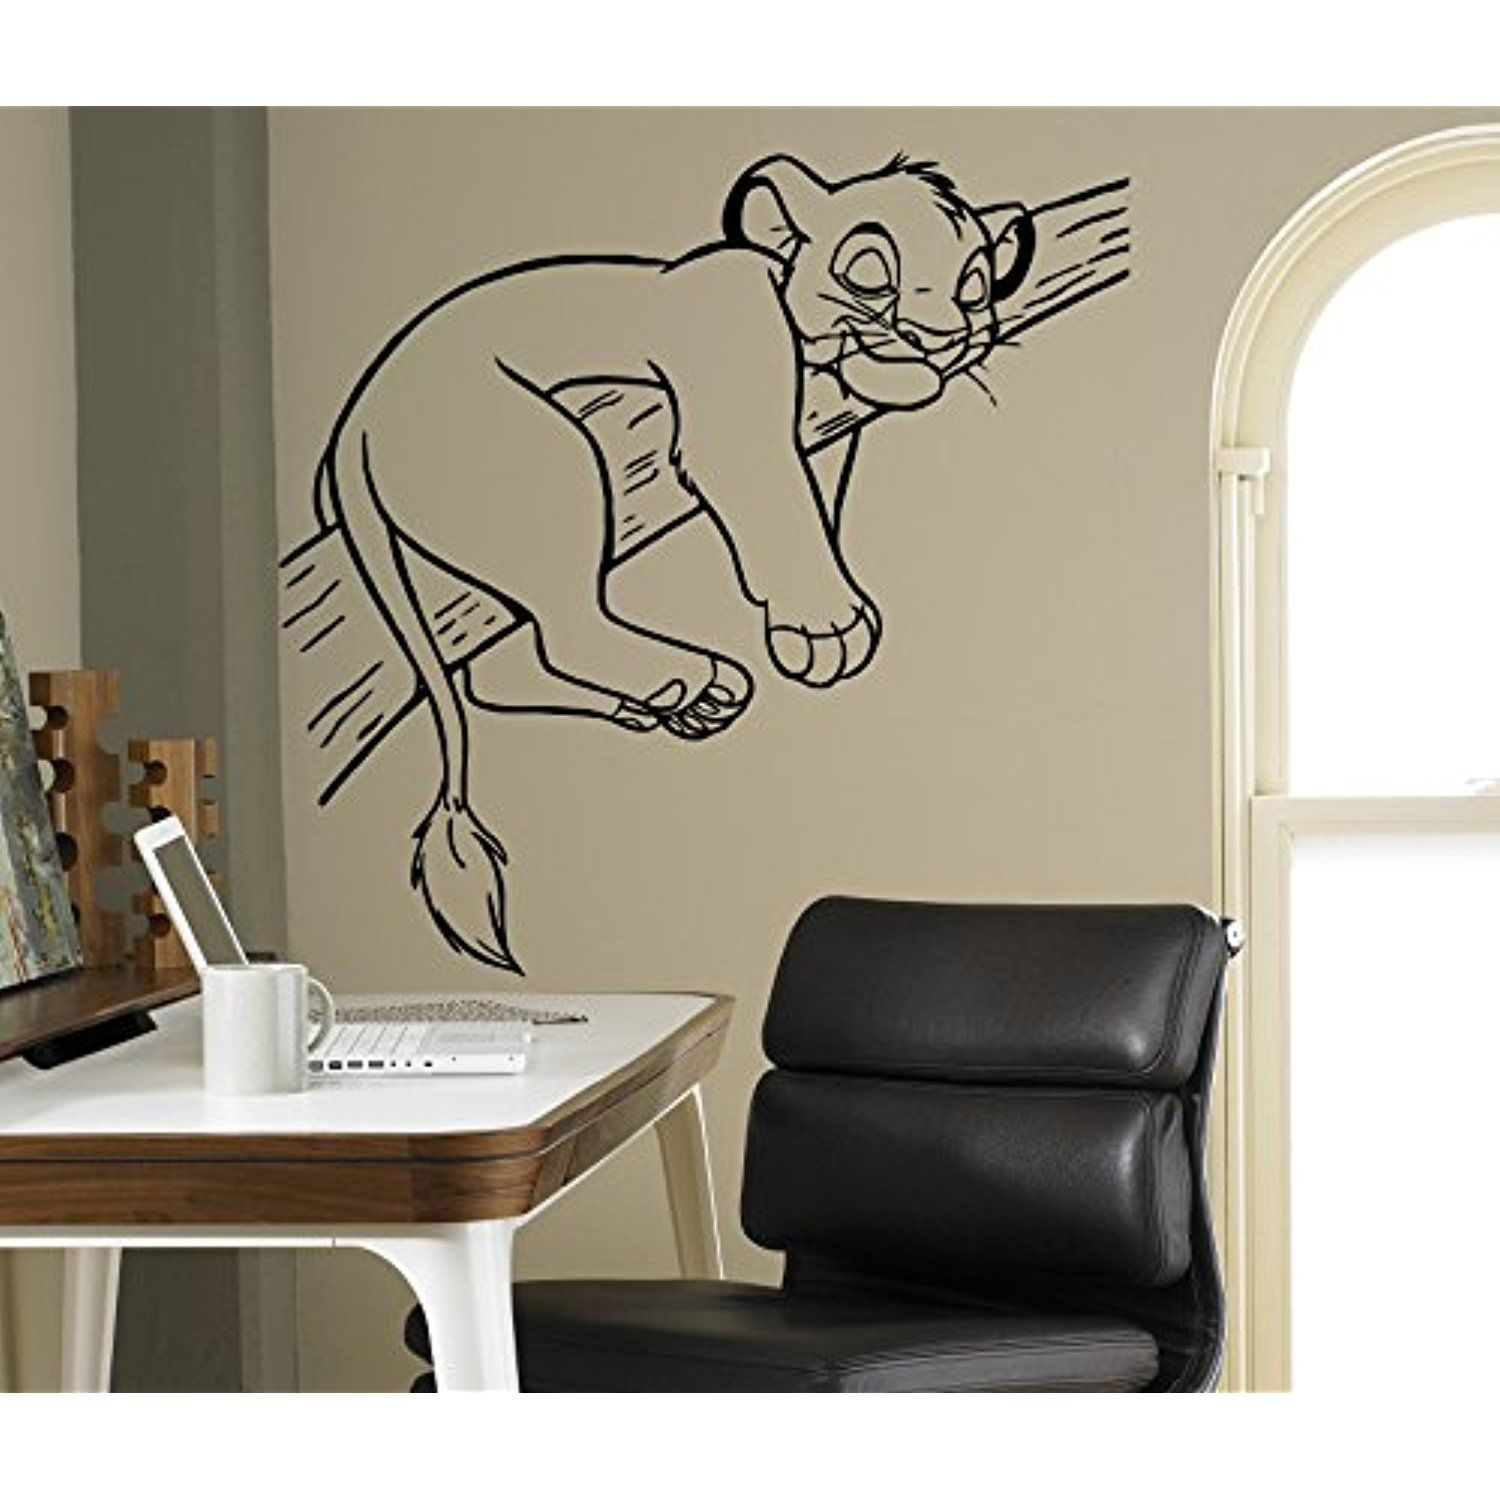 Simba Lion King Wall Decal Disney Cartoons Vinyl Sticker Home Interior  Removable Decor Children Kids Room